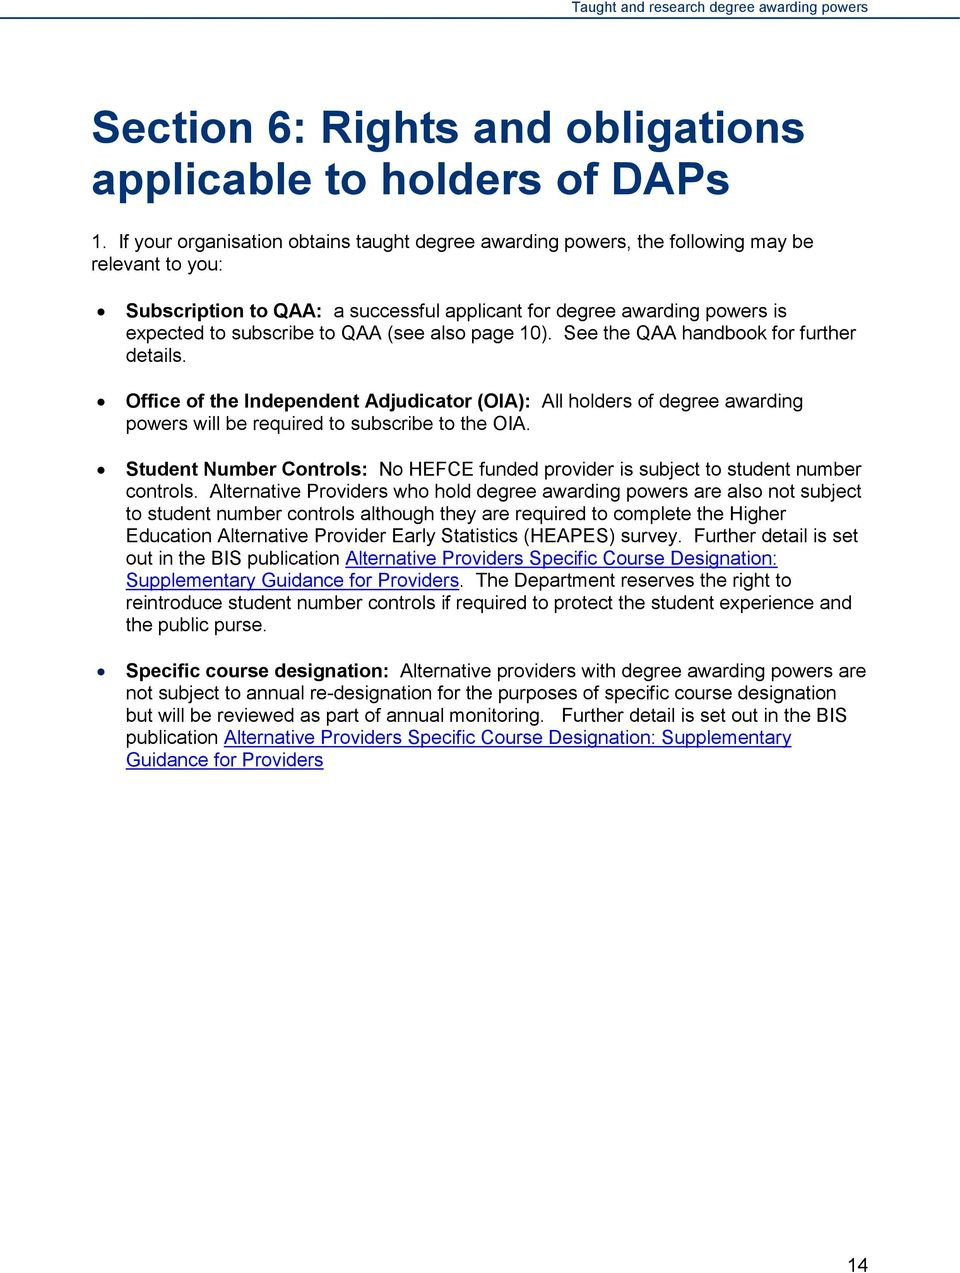 QAA (see also page 10). See the QAA handbook for further details. Office of the Independent Adjudicator (OIA): All holders of degree awarding powers will be required to subscribe to the OIA.